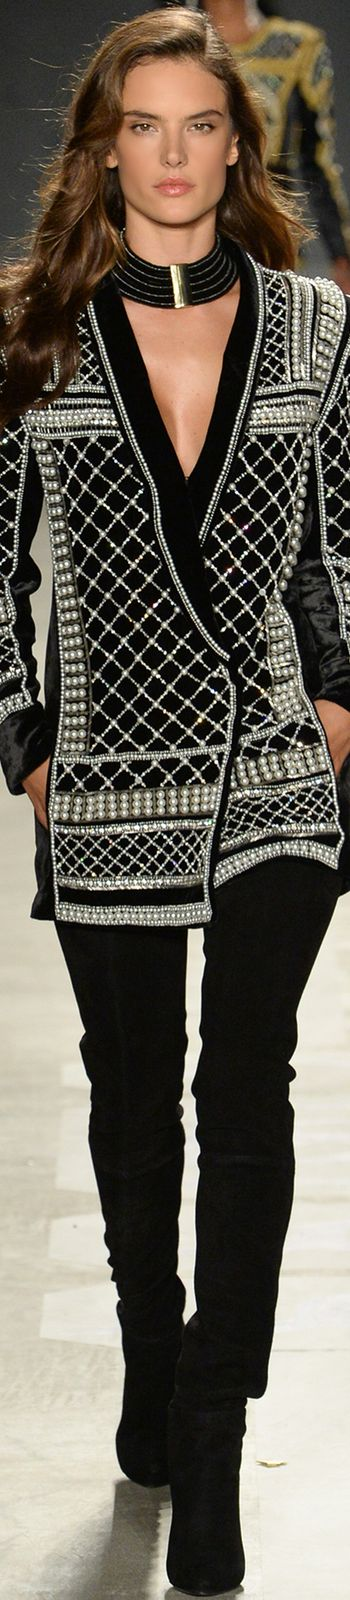 ALESSANDRA AMBROSIO WALKS FOR-  Balmain x H&M Collaboration Collection Runway 2015